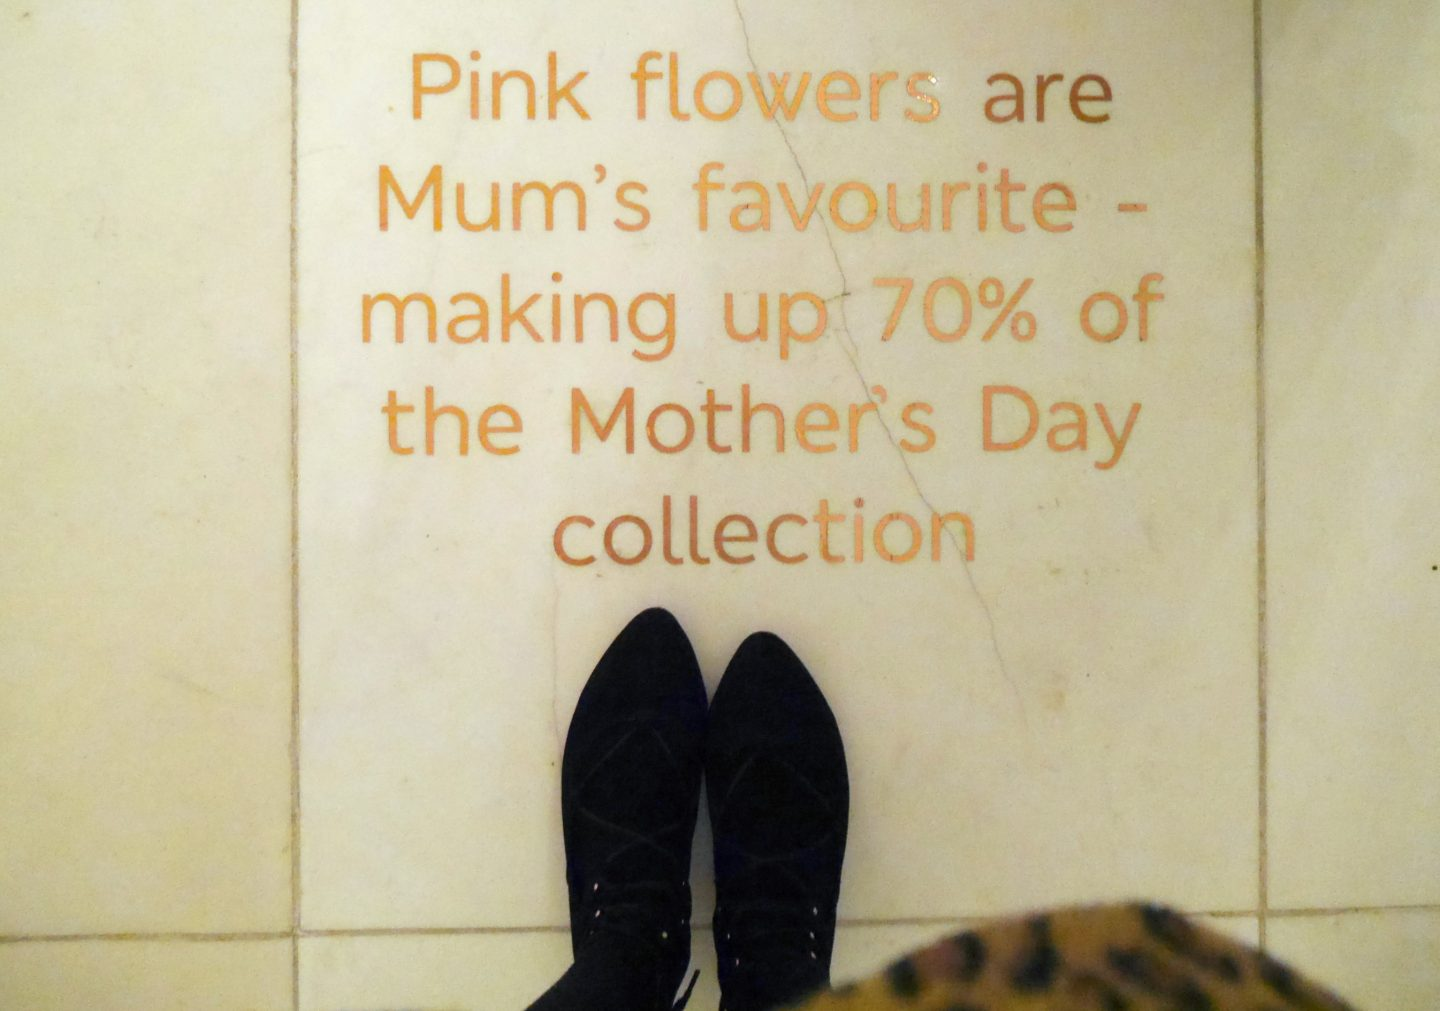 Mother's Day flower facts from M&S